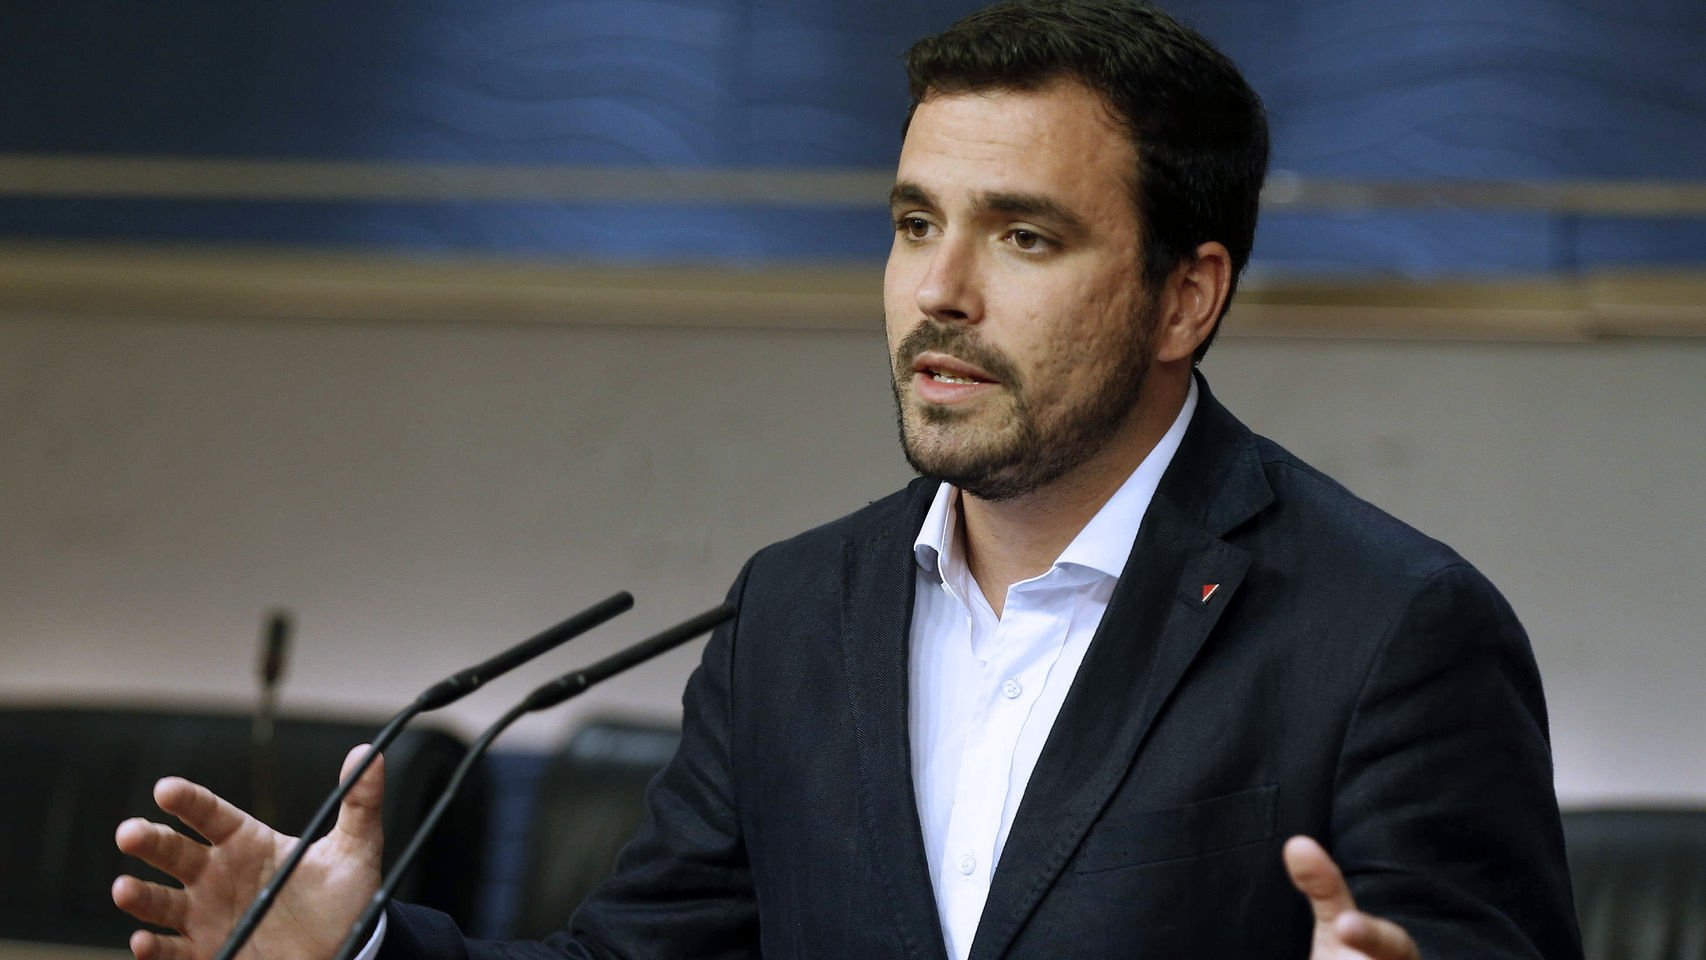 Sweeping Gambling Changes Imminent Says Garzón